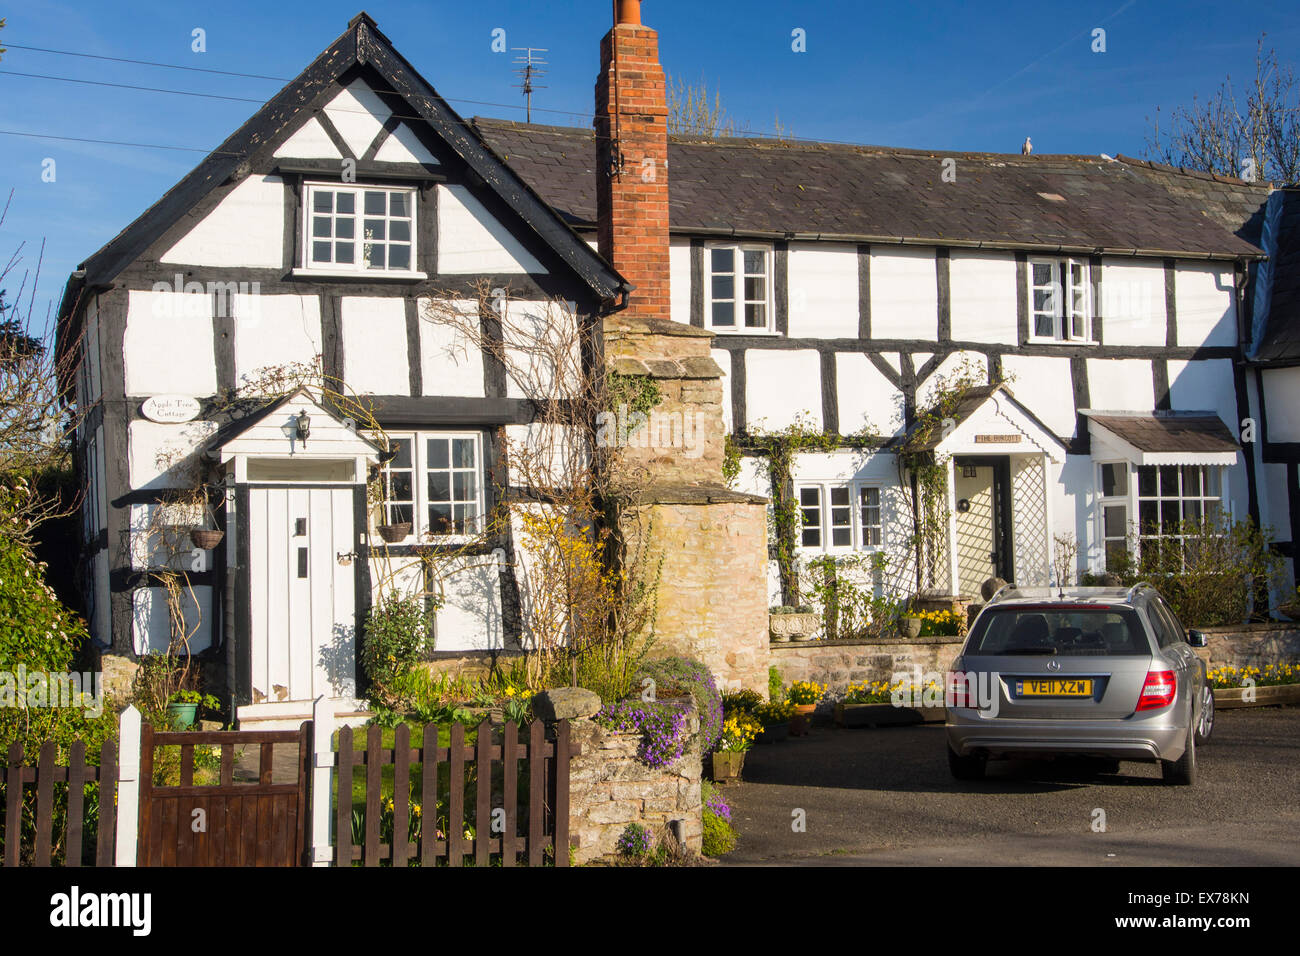 An ancient medieval Tudor timber framed house in Eardisland, Herefordshire, UK. Eardisland has been voted the prettiest - Stock Image